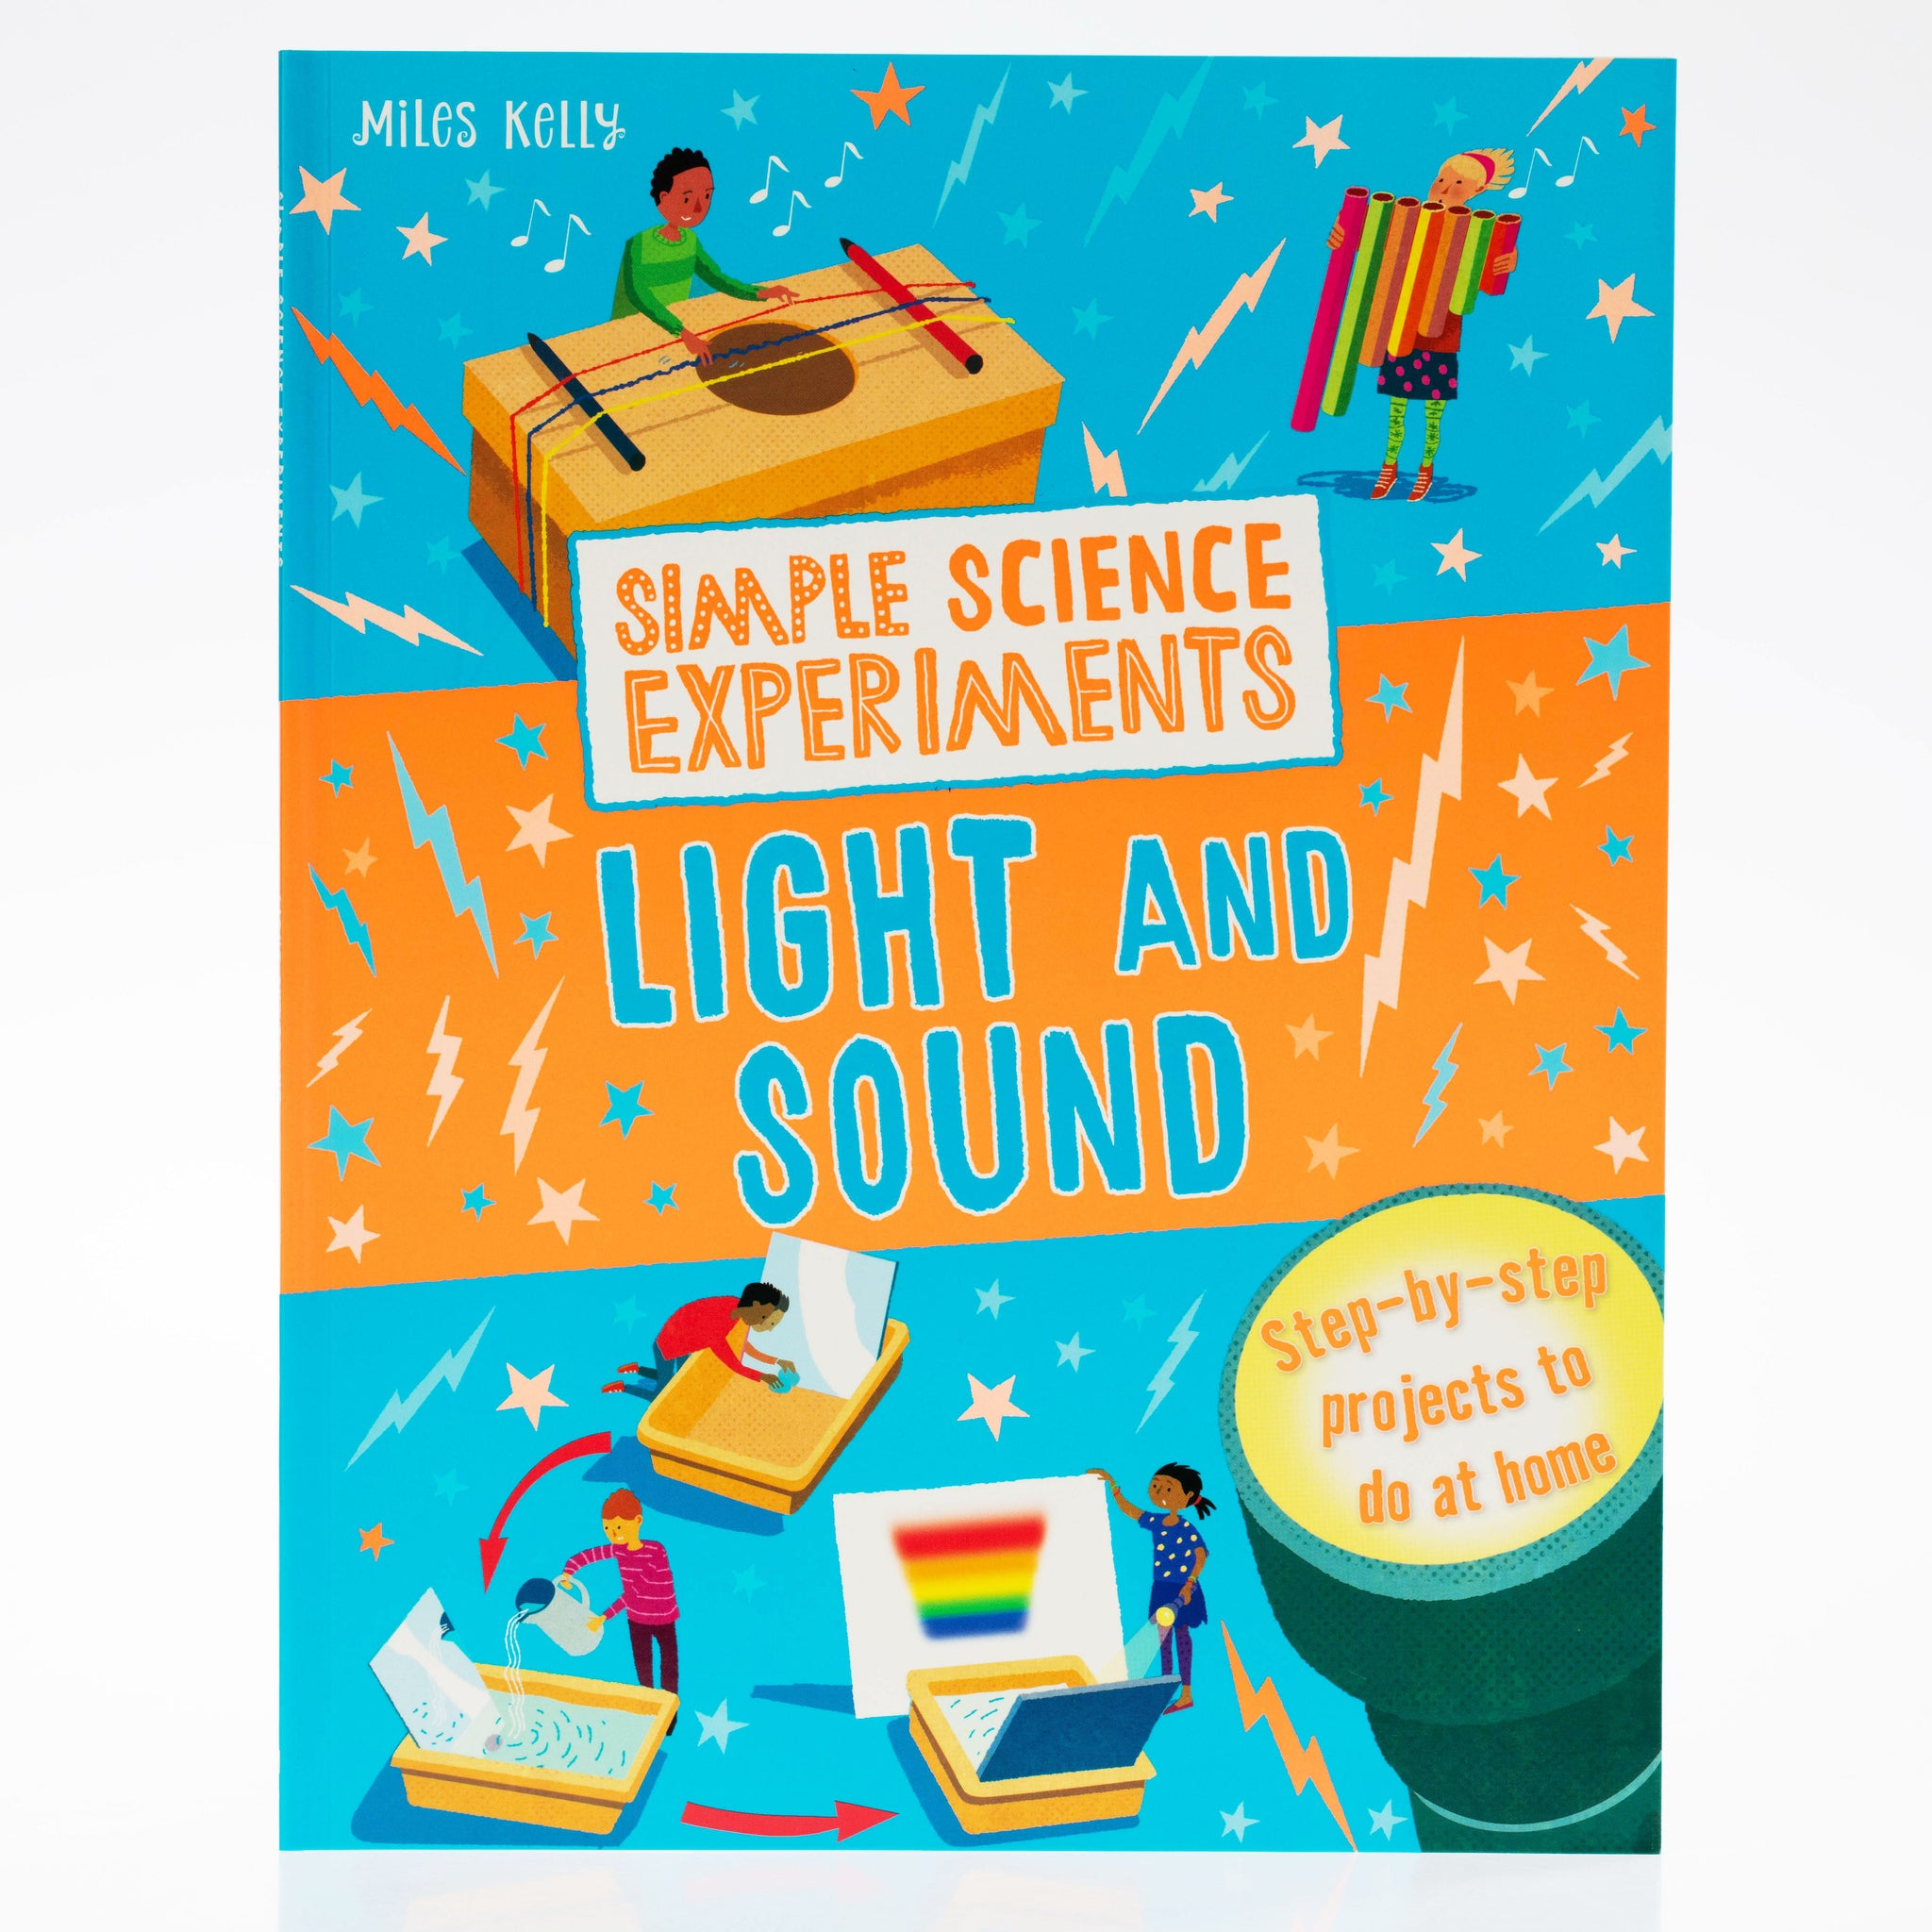 Simple Science Experiments - Light and Sound